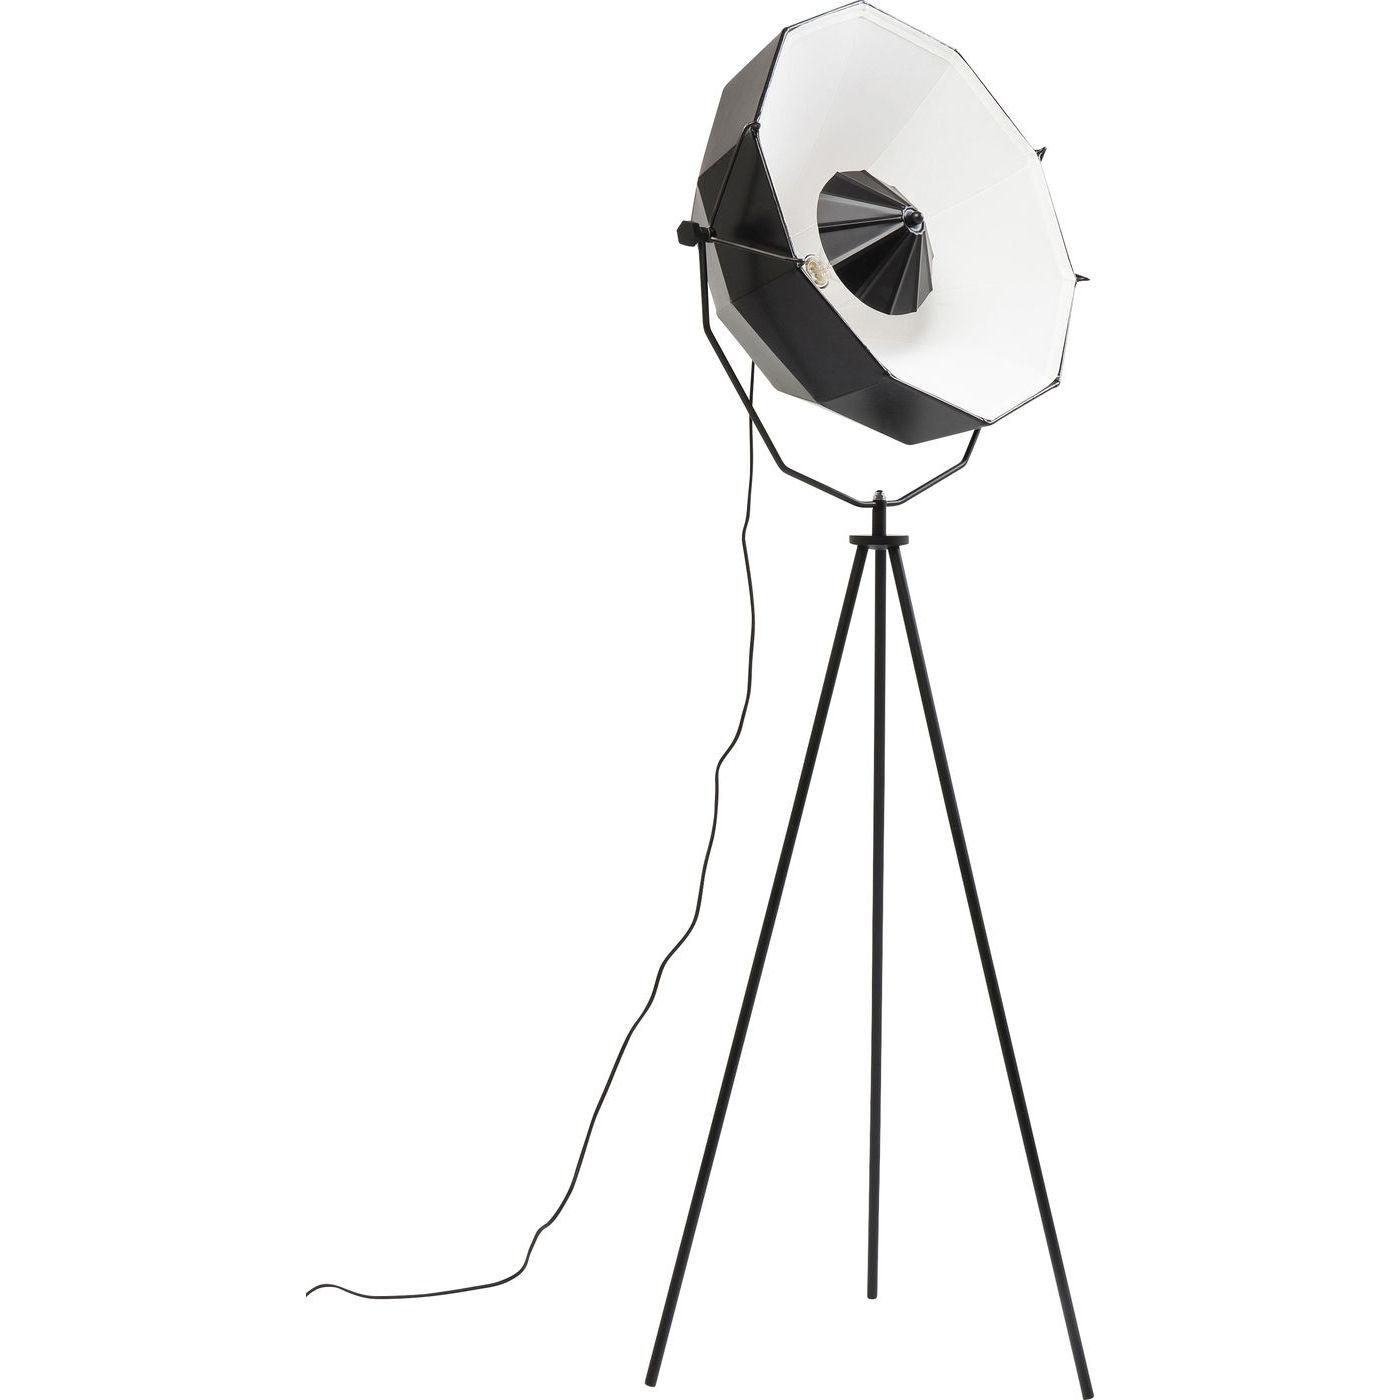 Image of   KARE DESIGN Hollywood Tripod gulvlampe - sort/hvid stål/plastik